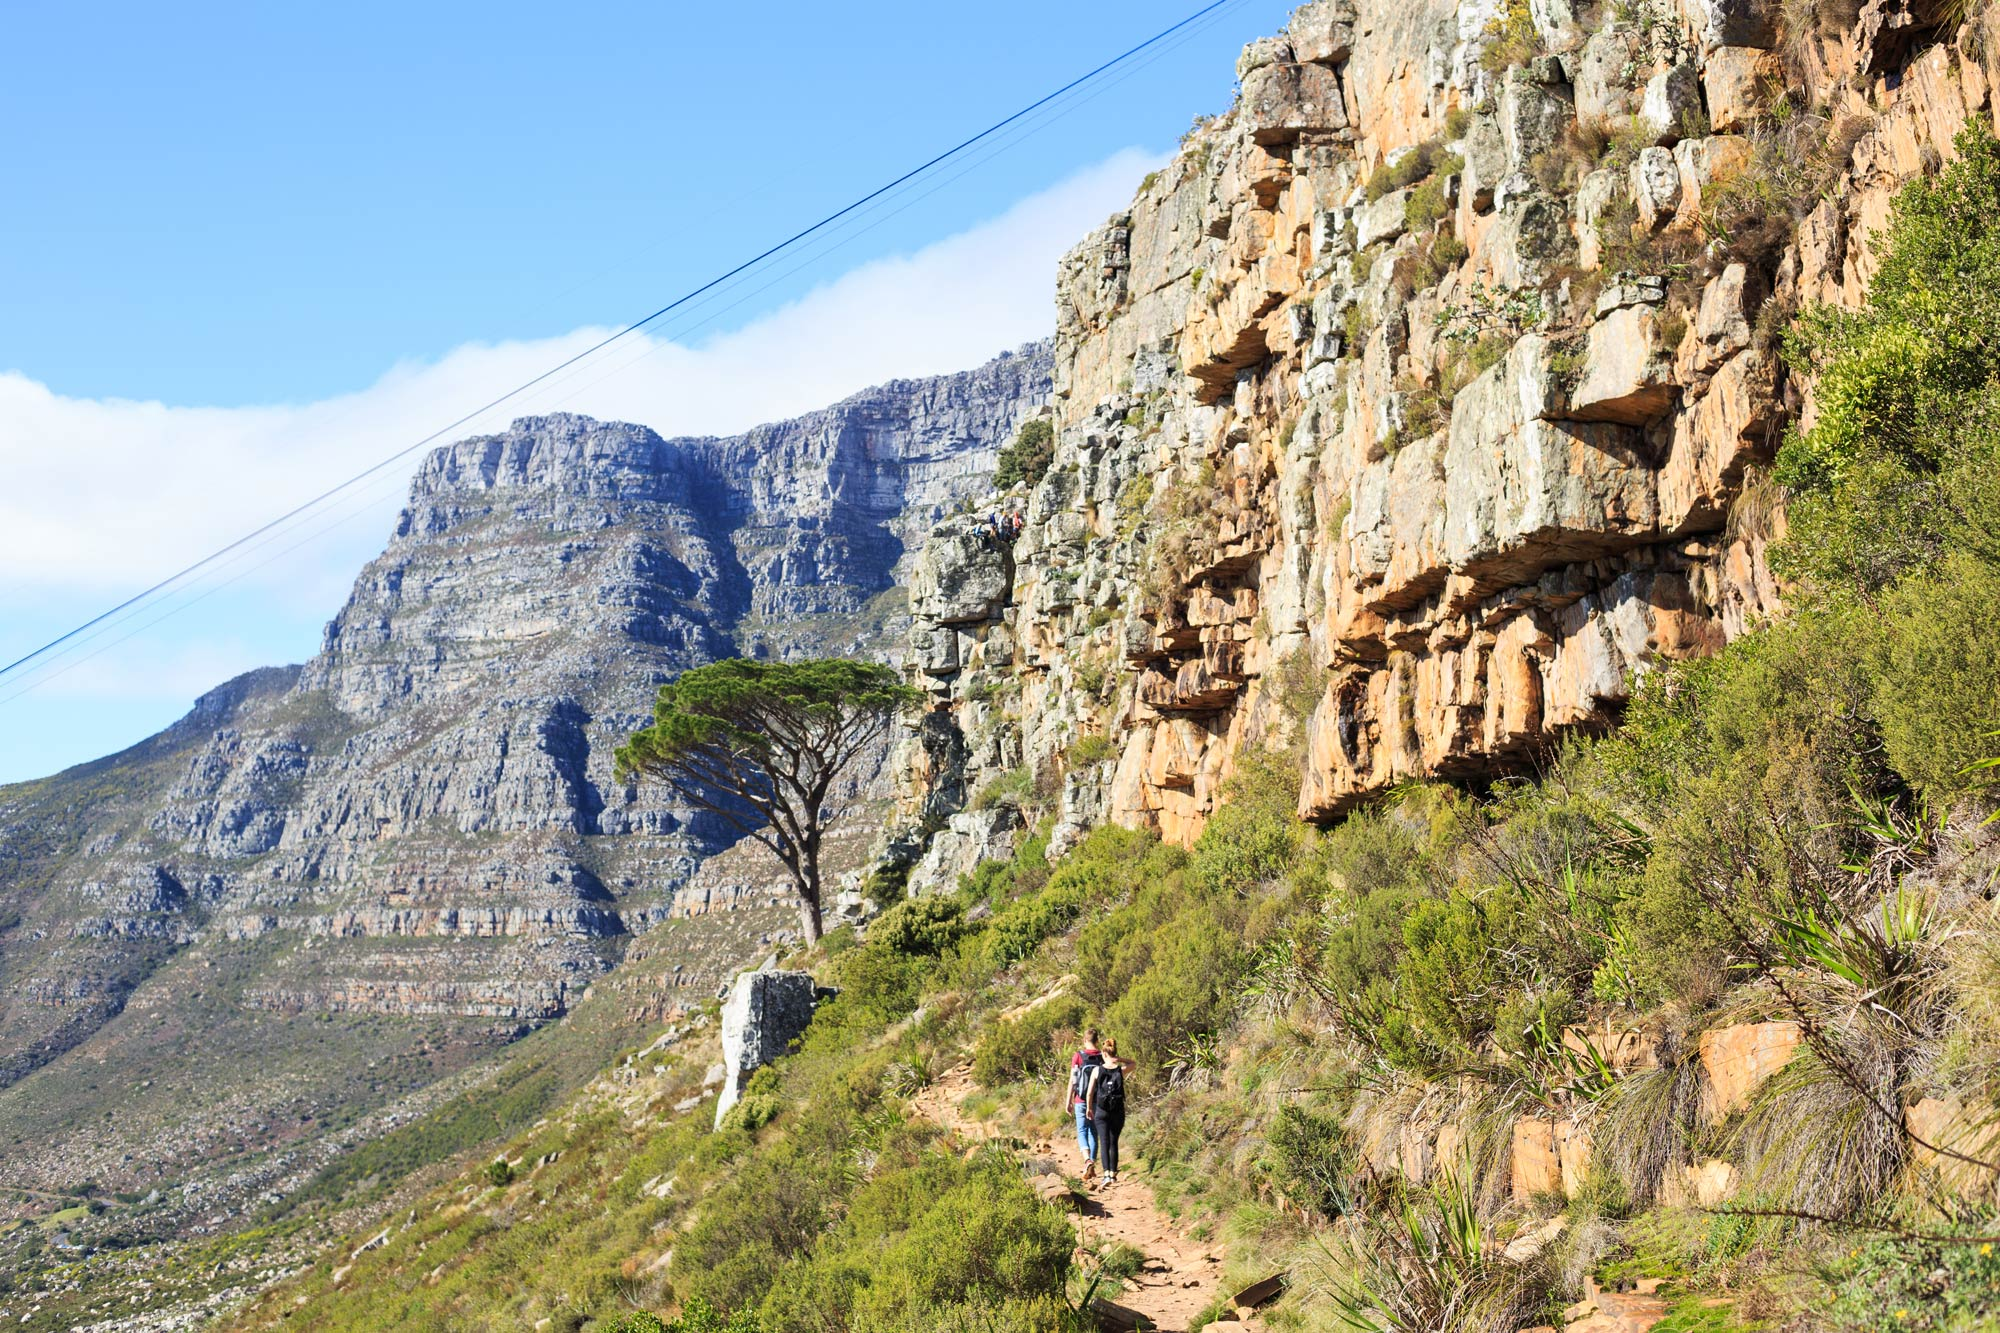 The Table Mountain.